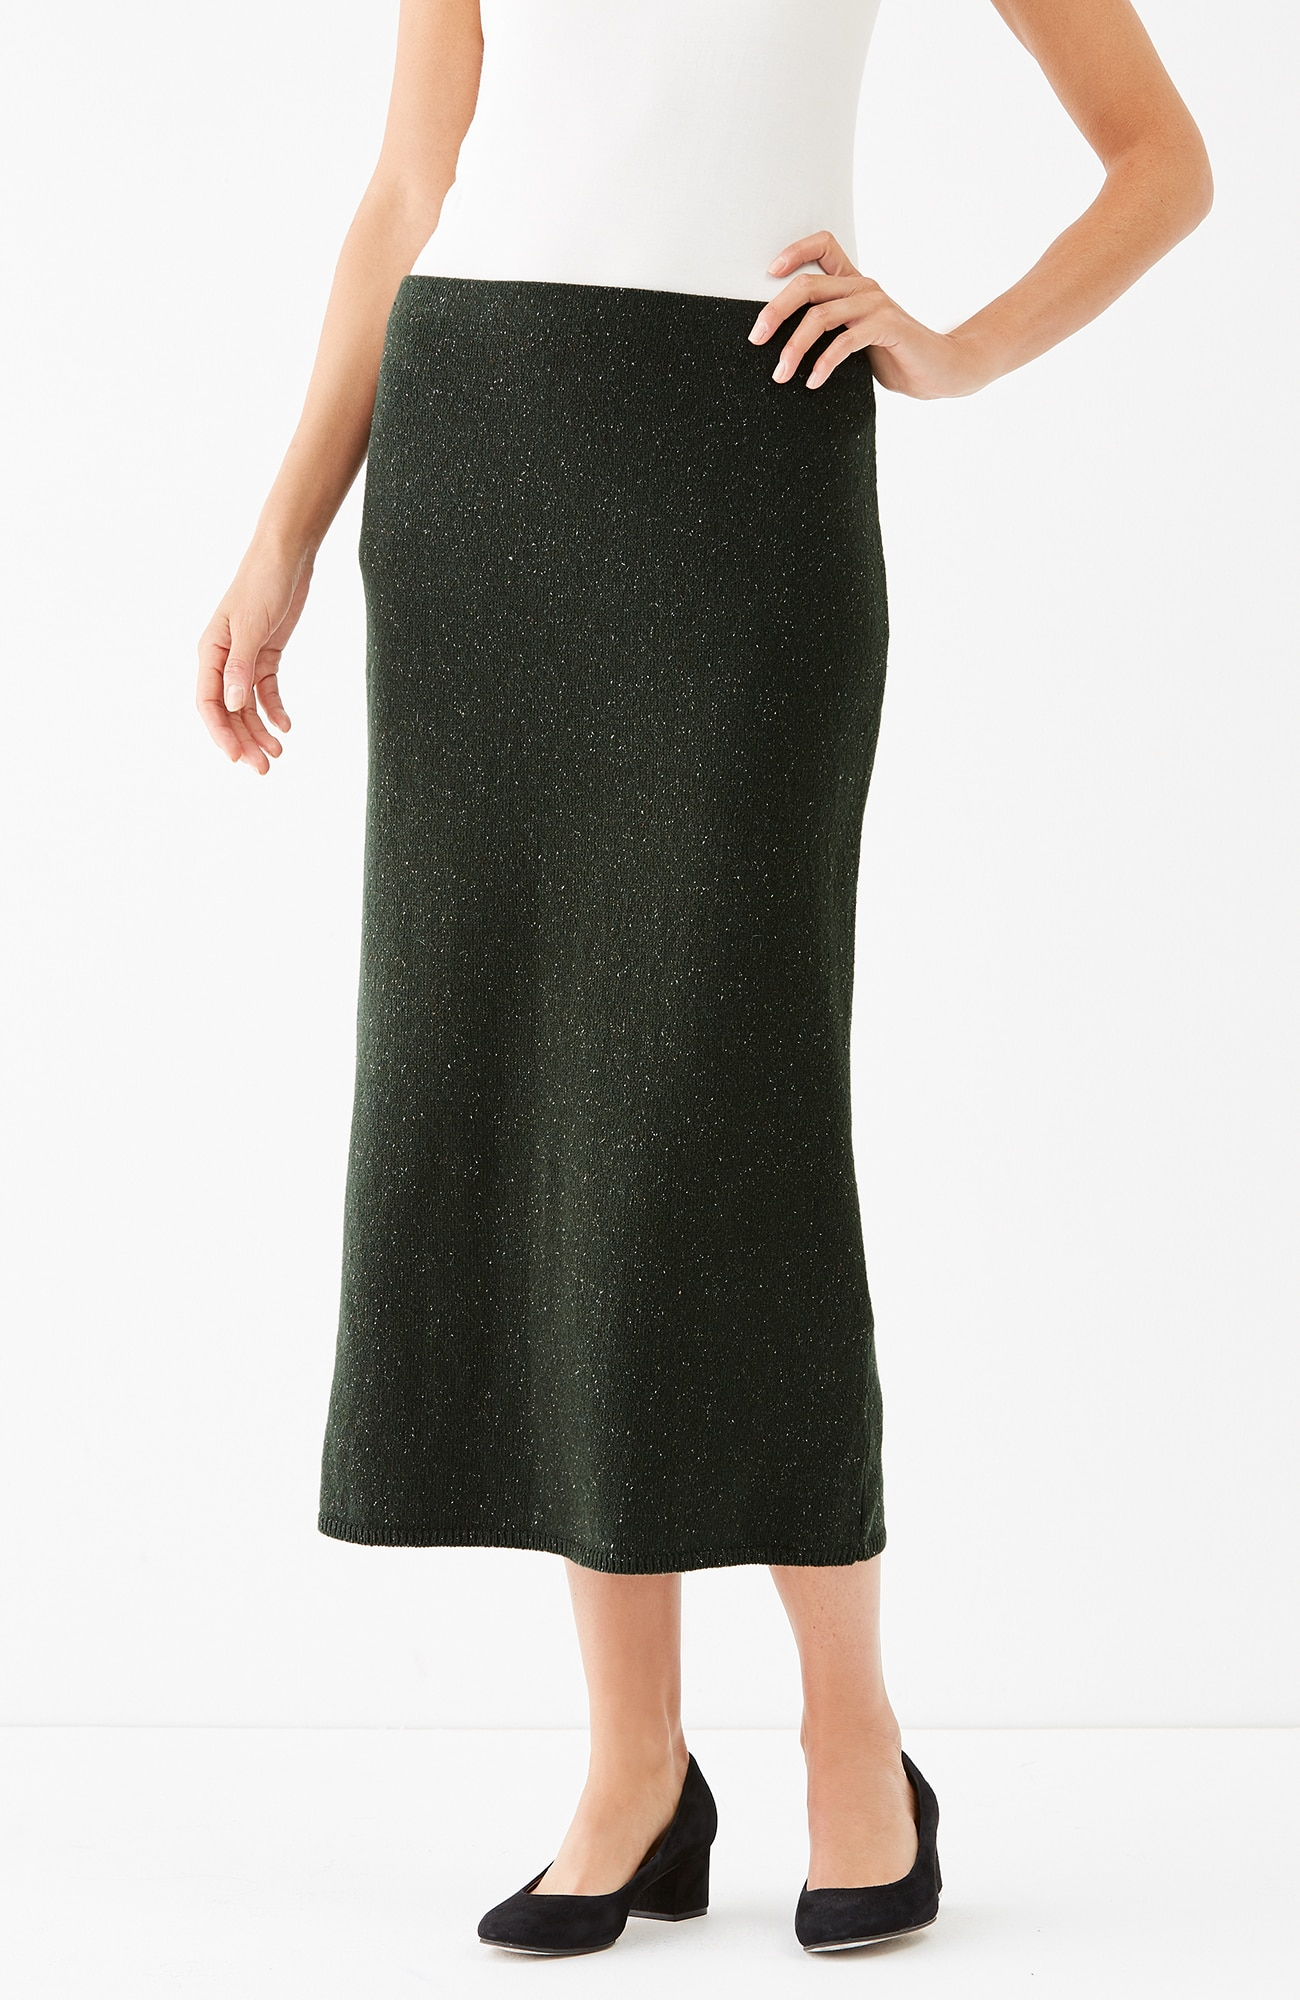 Callie sweater knit skirt